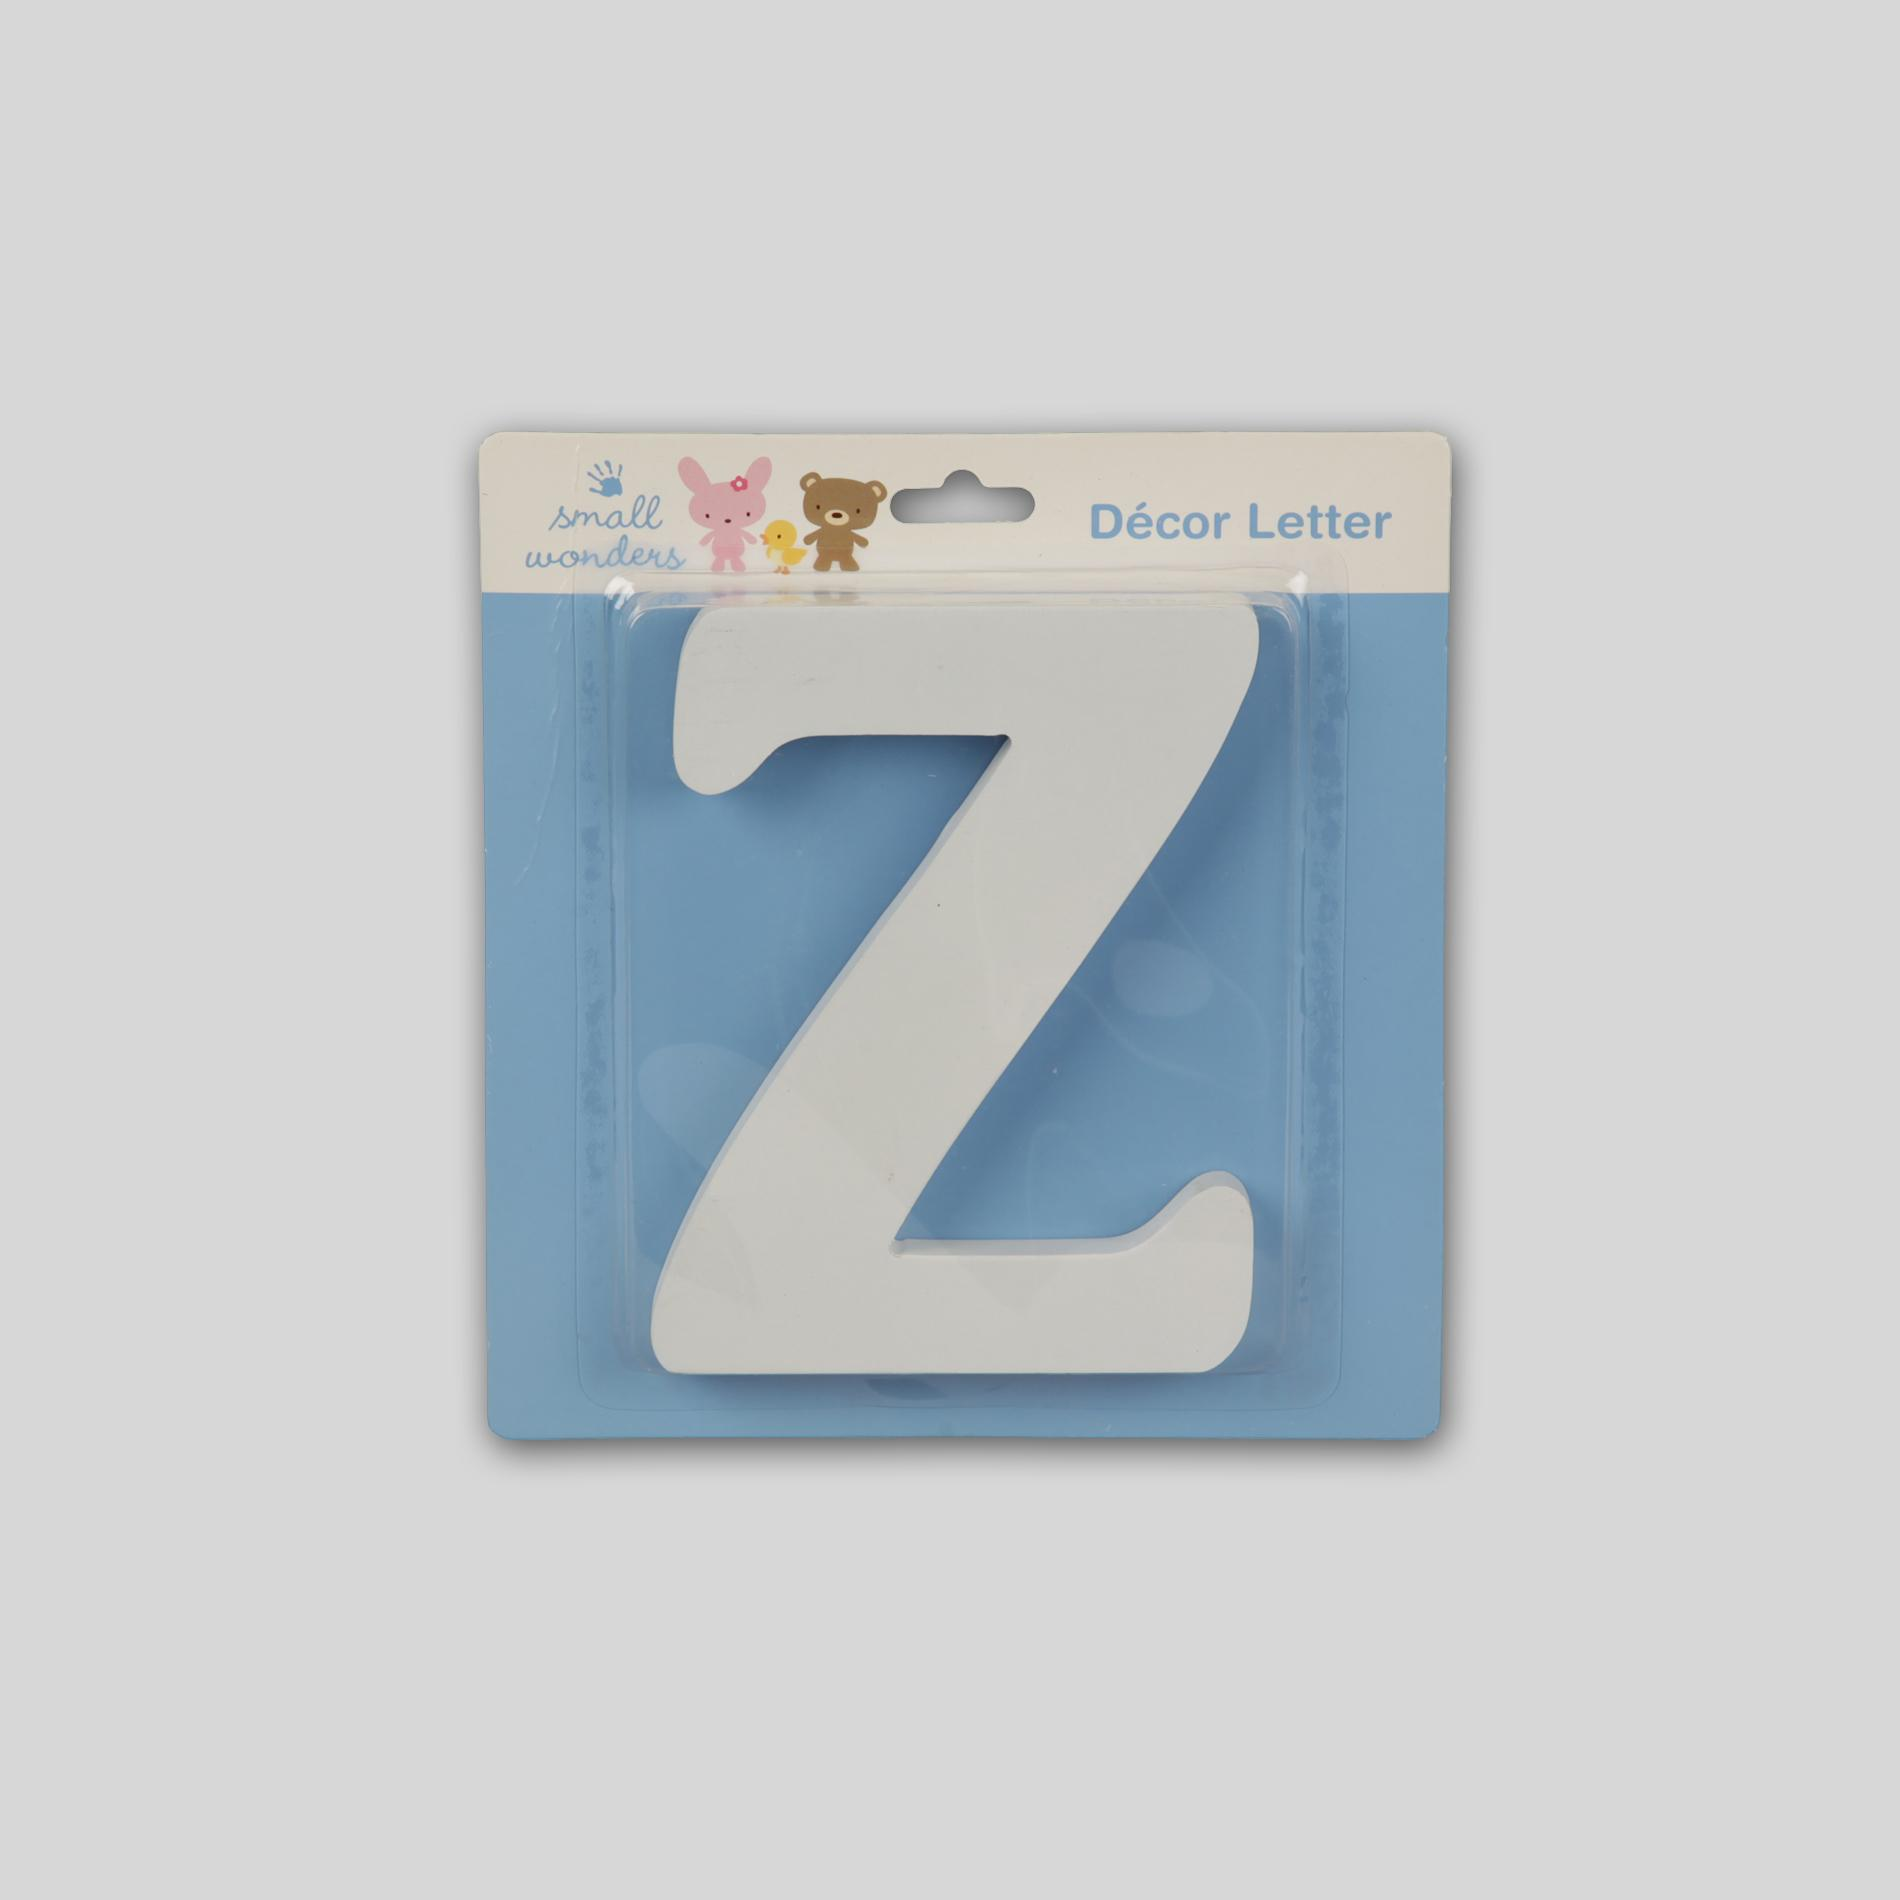 Small Wonders Wooden Letter Wall Decor - Letter Z